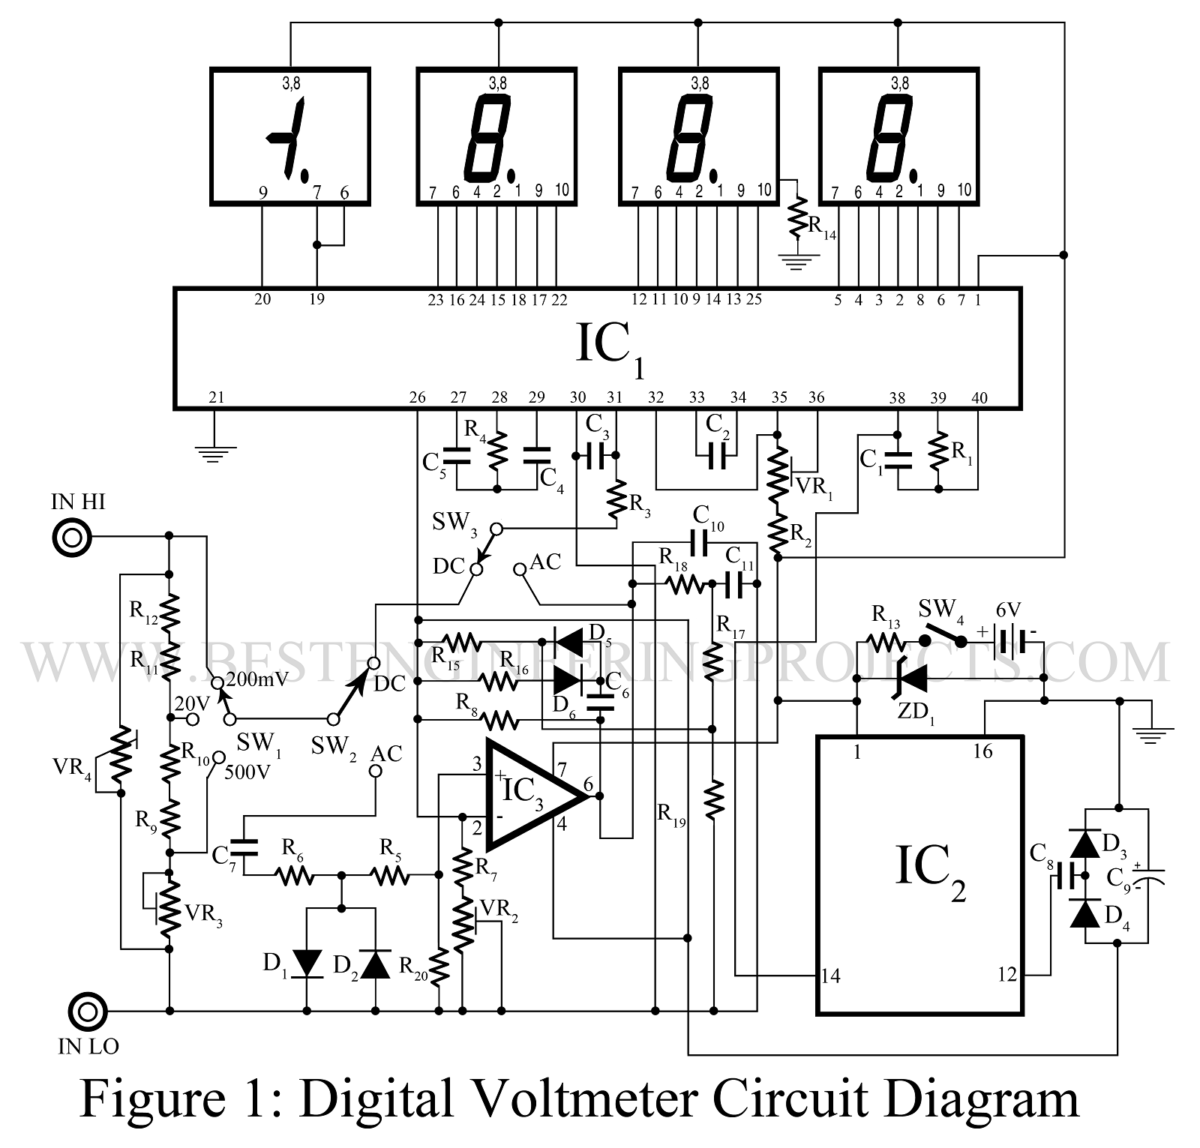 digital voltmeter  dvm  circuit